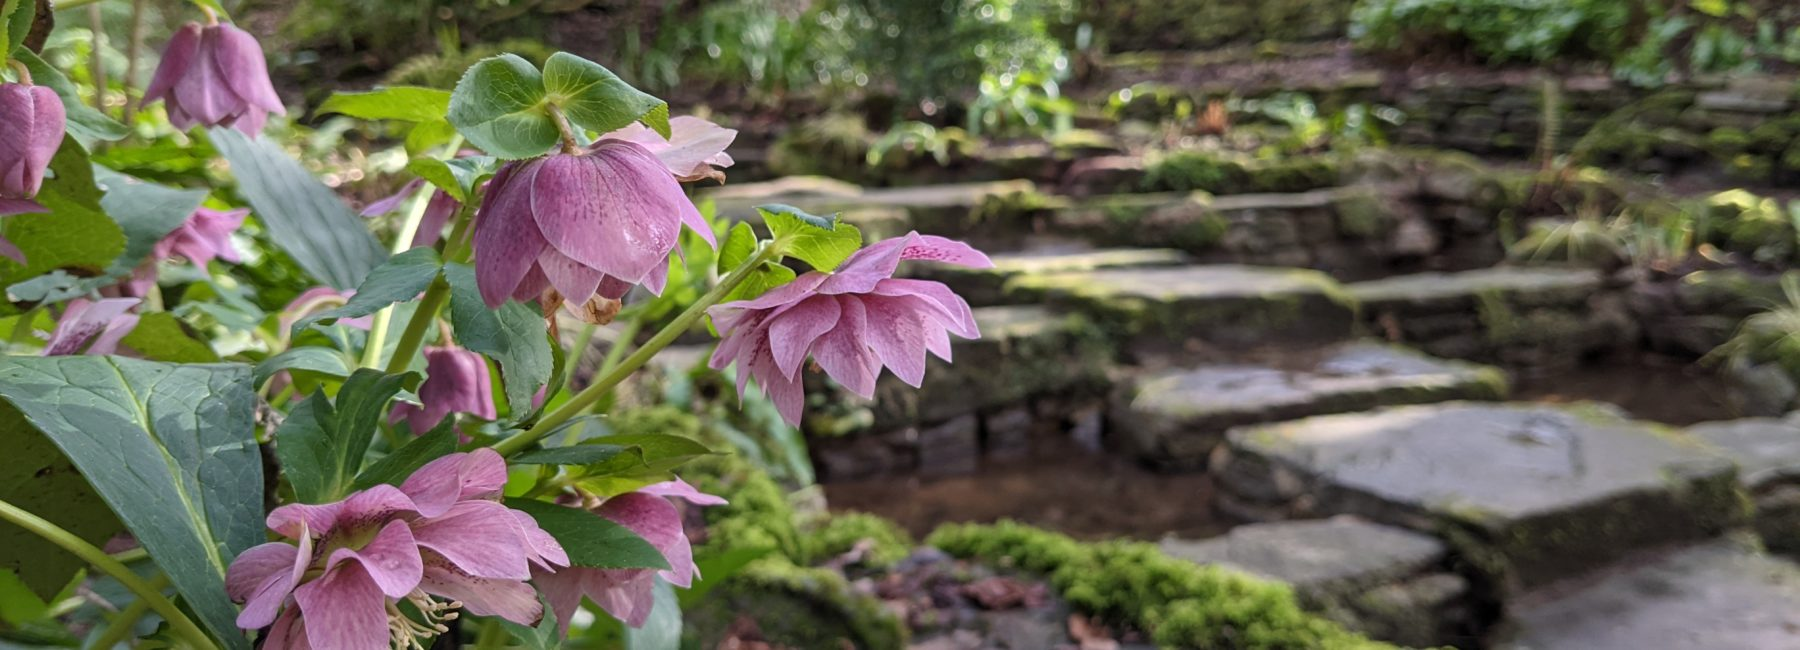 Pink flowers in front of stepping stones